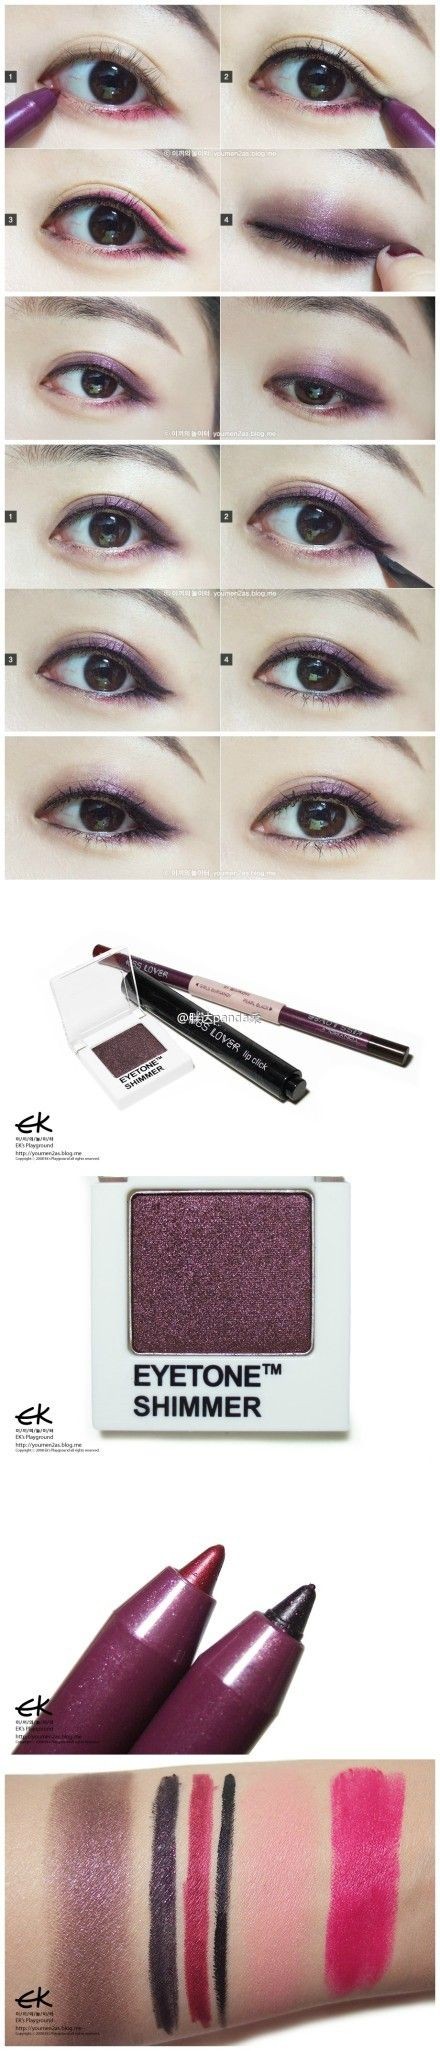 Korean purple eye make-up tutorial~ #JoinNerium #DebbieKrug #NeriumKorea www.AsianSkincare.Rocks